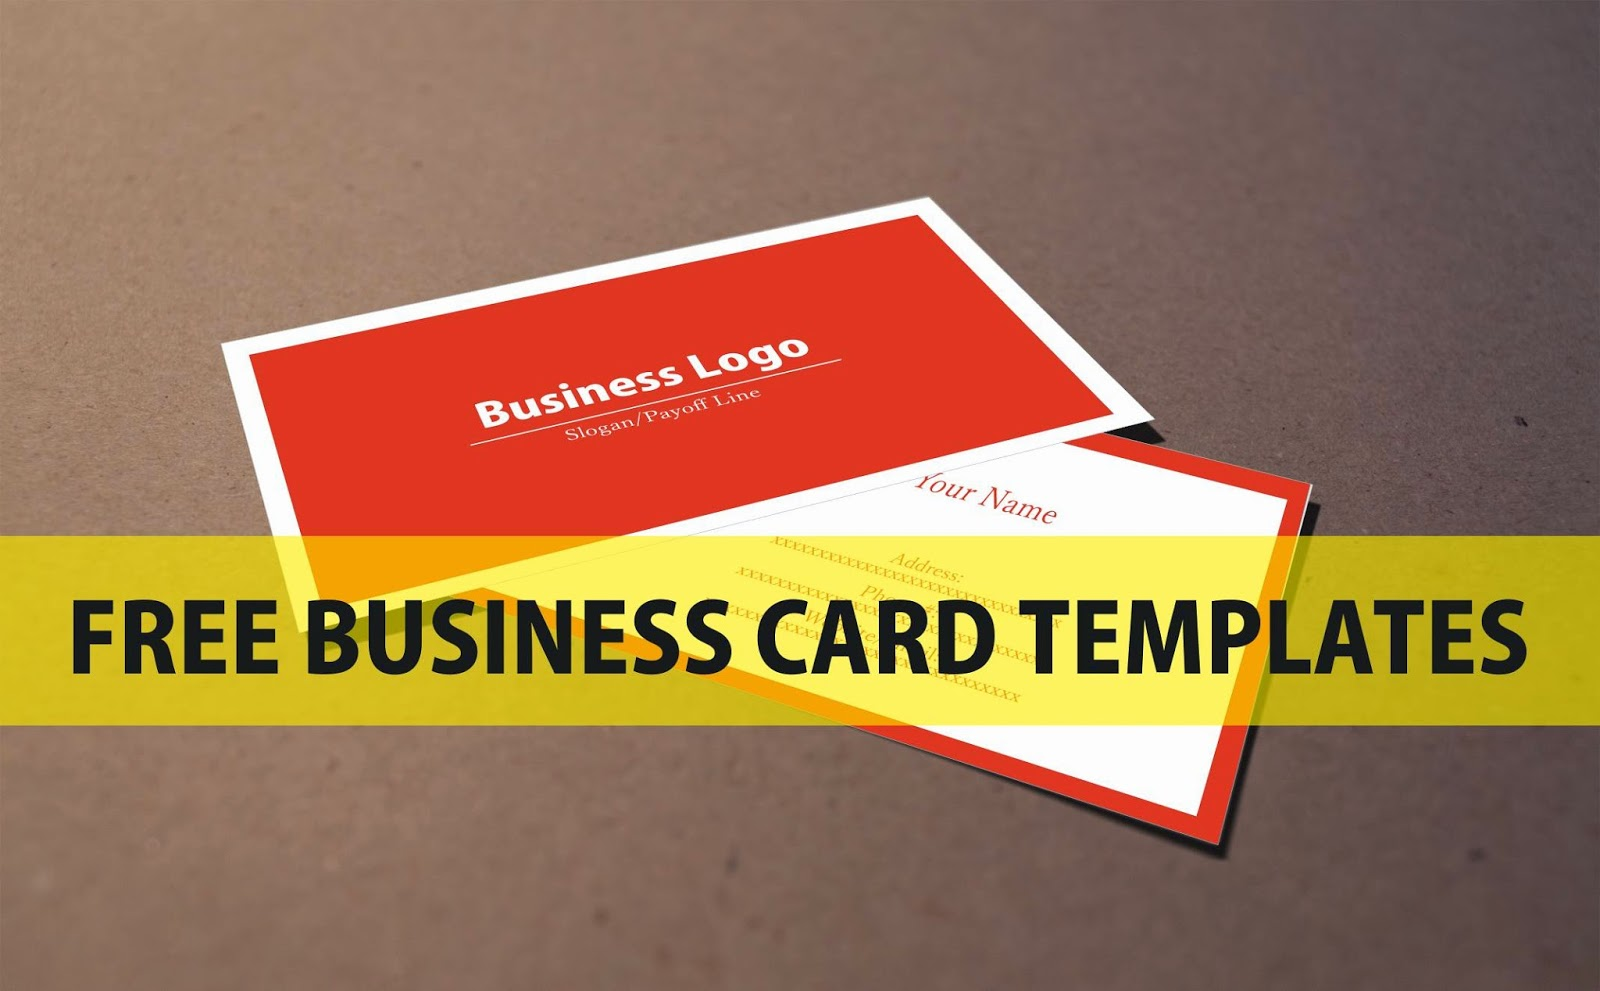 Free business card template download coreldraw file a graphic free business card template download coreldraw file wajeb Images